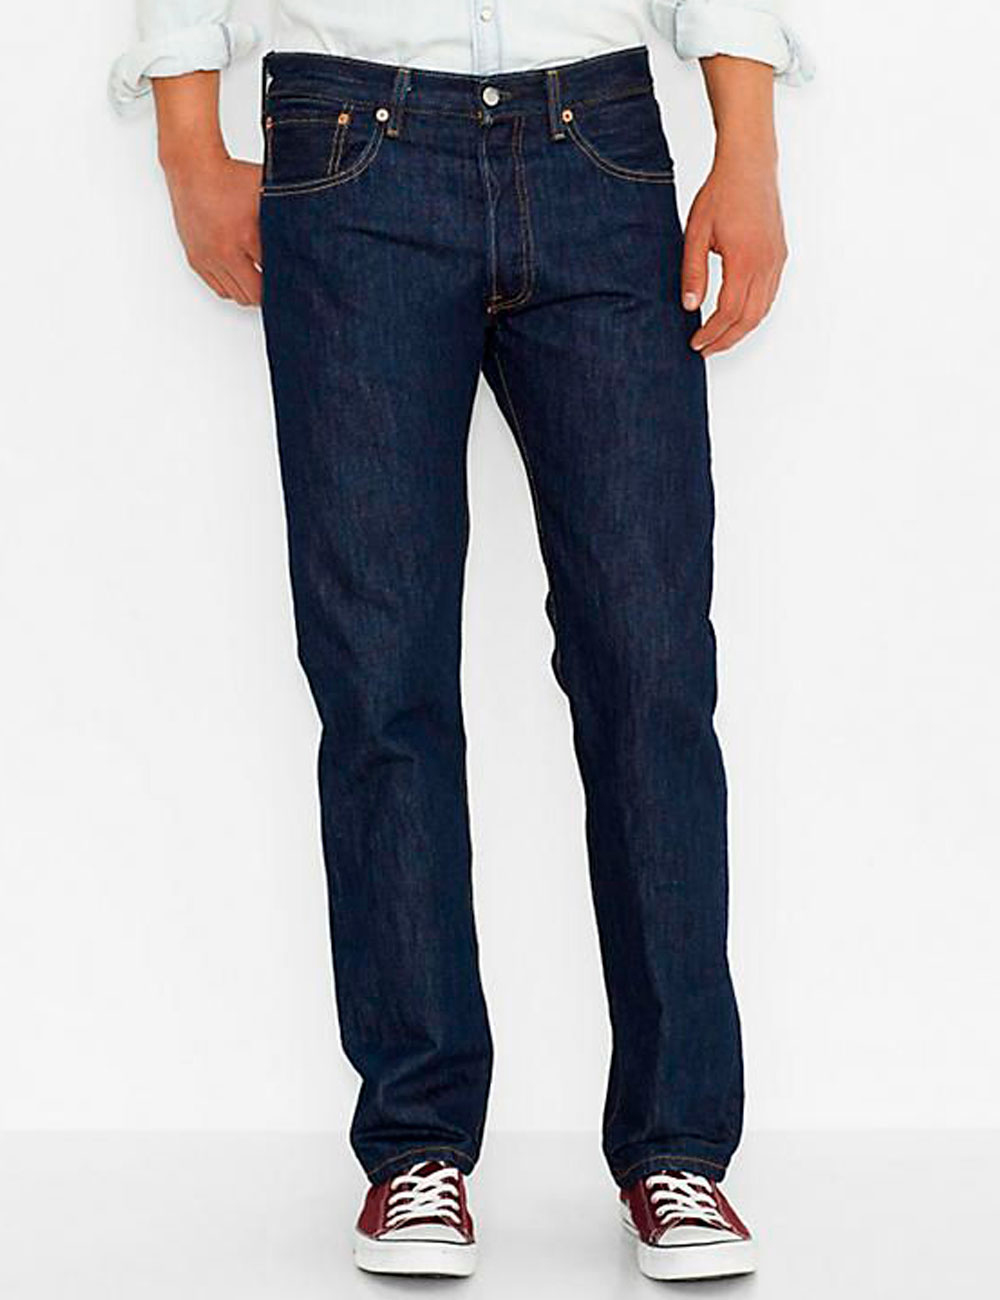 super popular 5732e 0a883 Herrenjeans Levi's 501, bleu, L 32